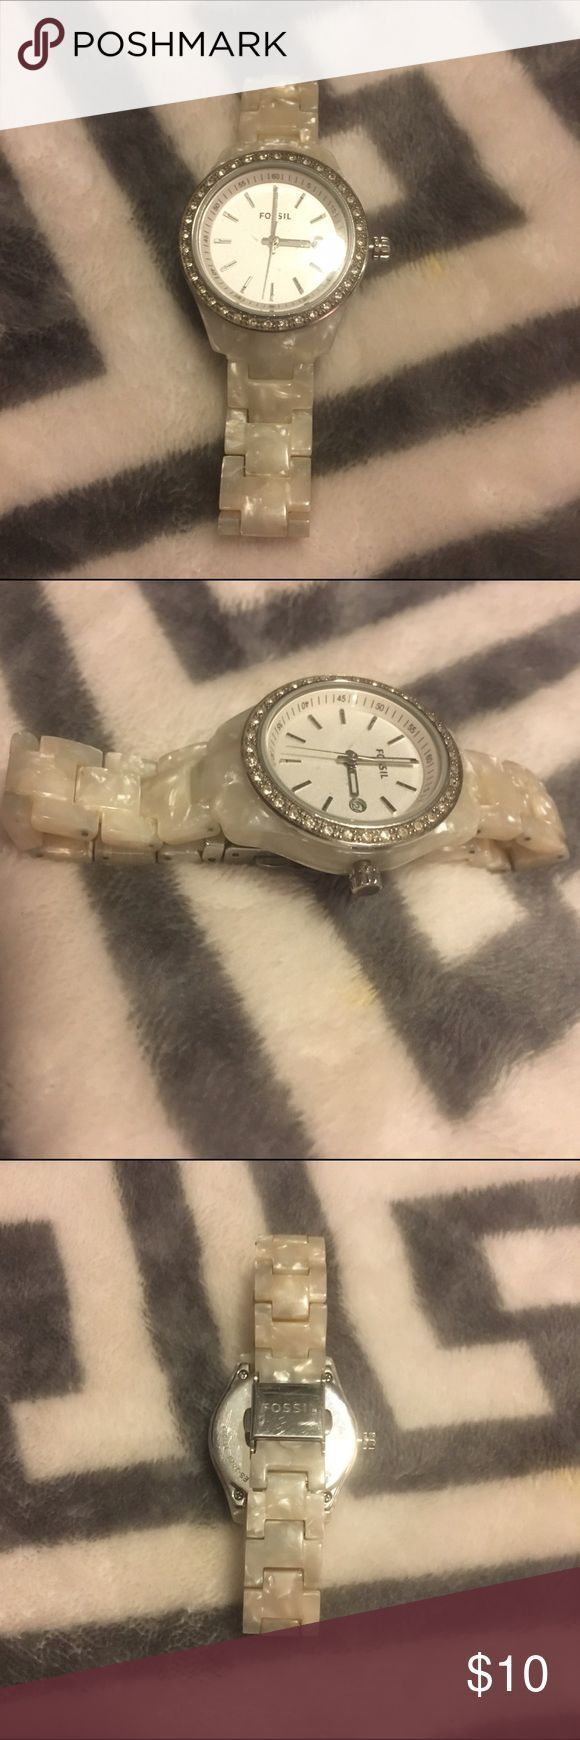 Montre pour femme : rubies.work/ Fossil watch womens Fossil womens watch Fossil Accessories Watc